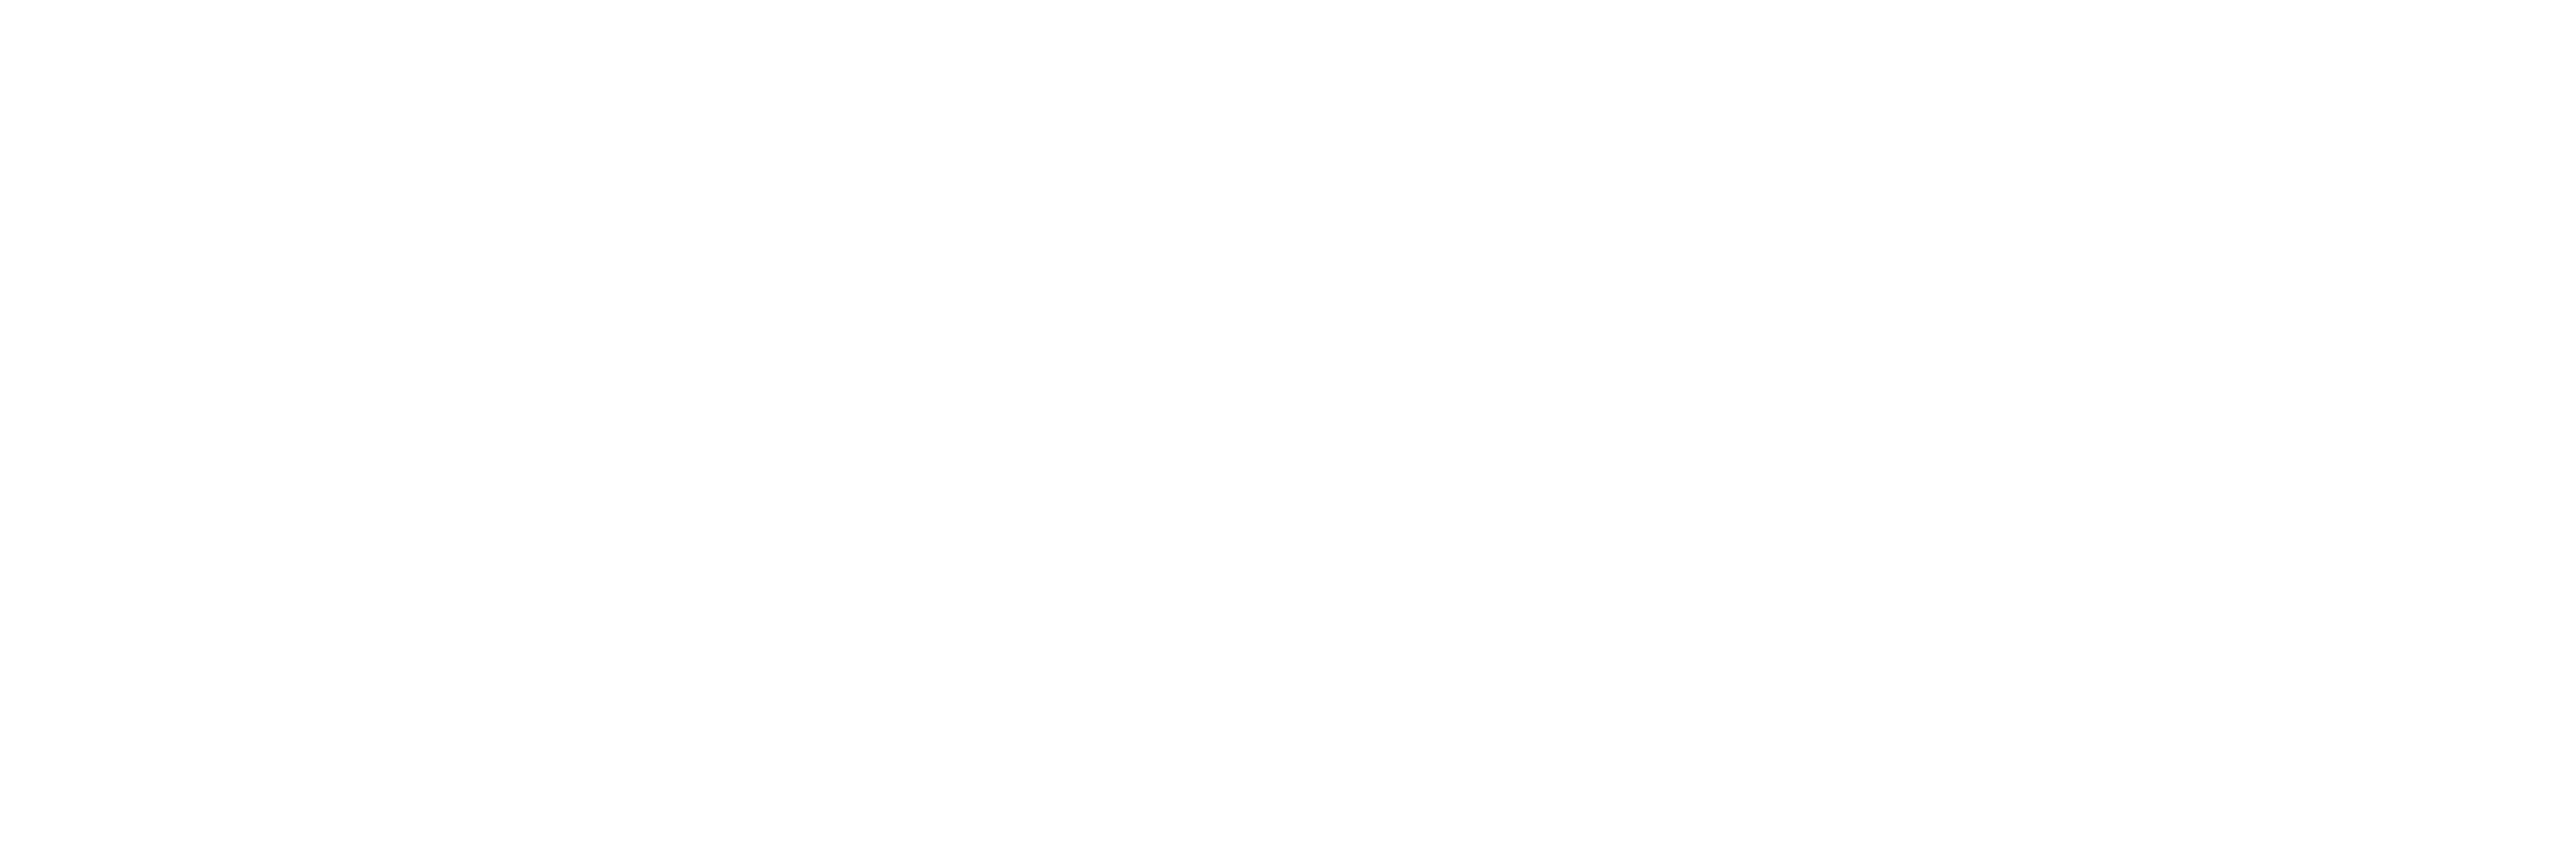 The Experiment Logo